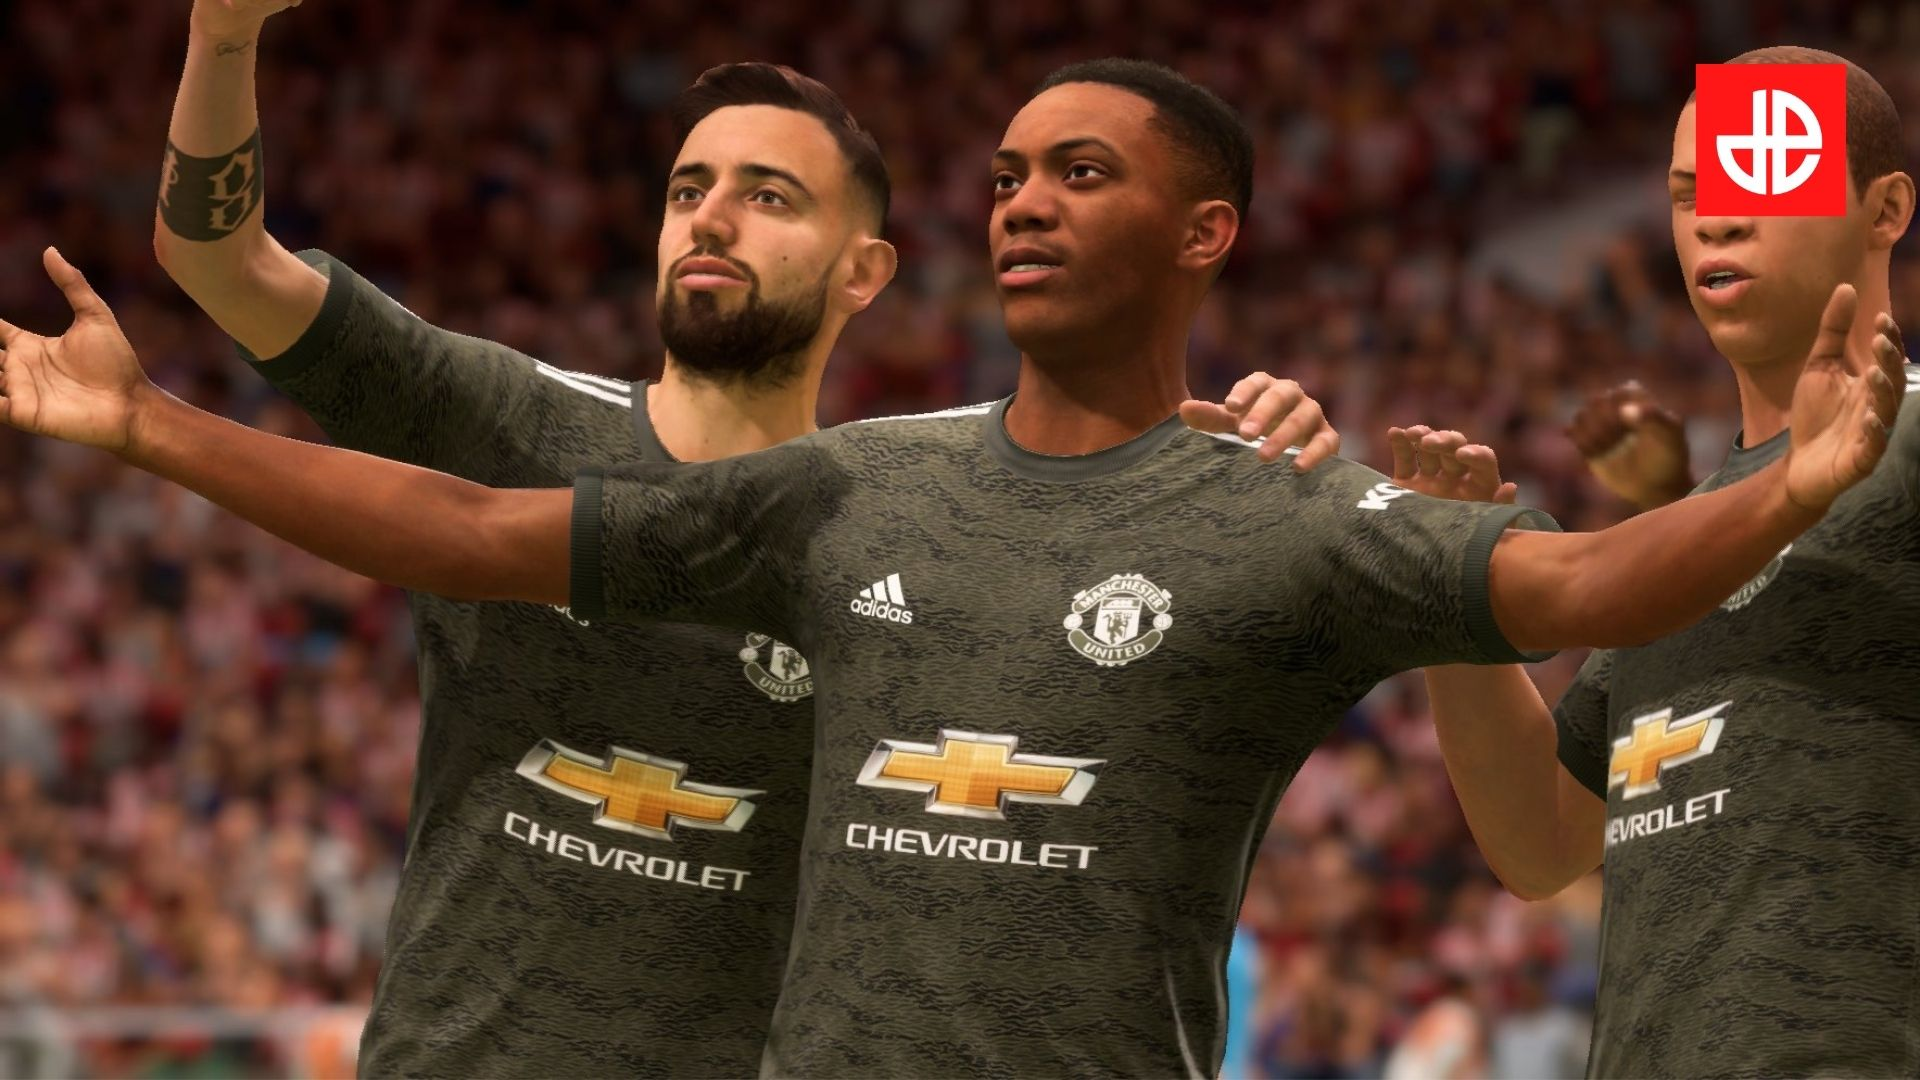 FIFA 21 best strikers image with Martial from Man Utd